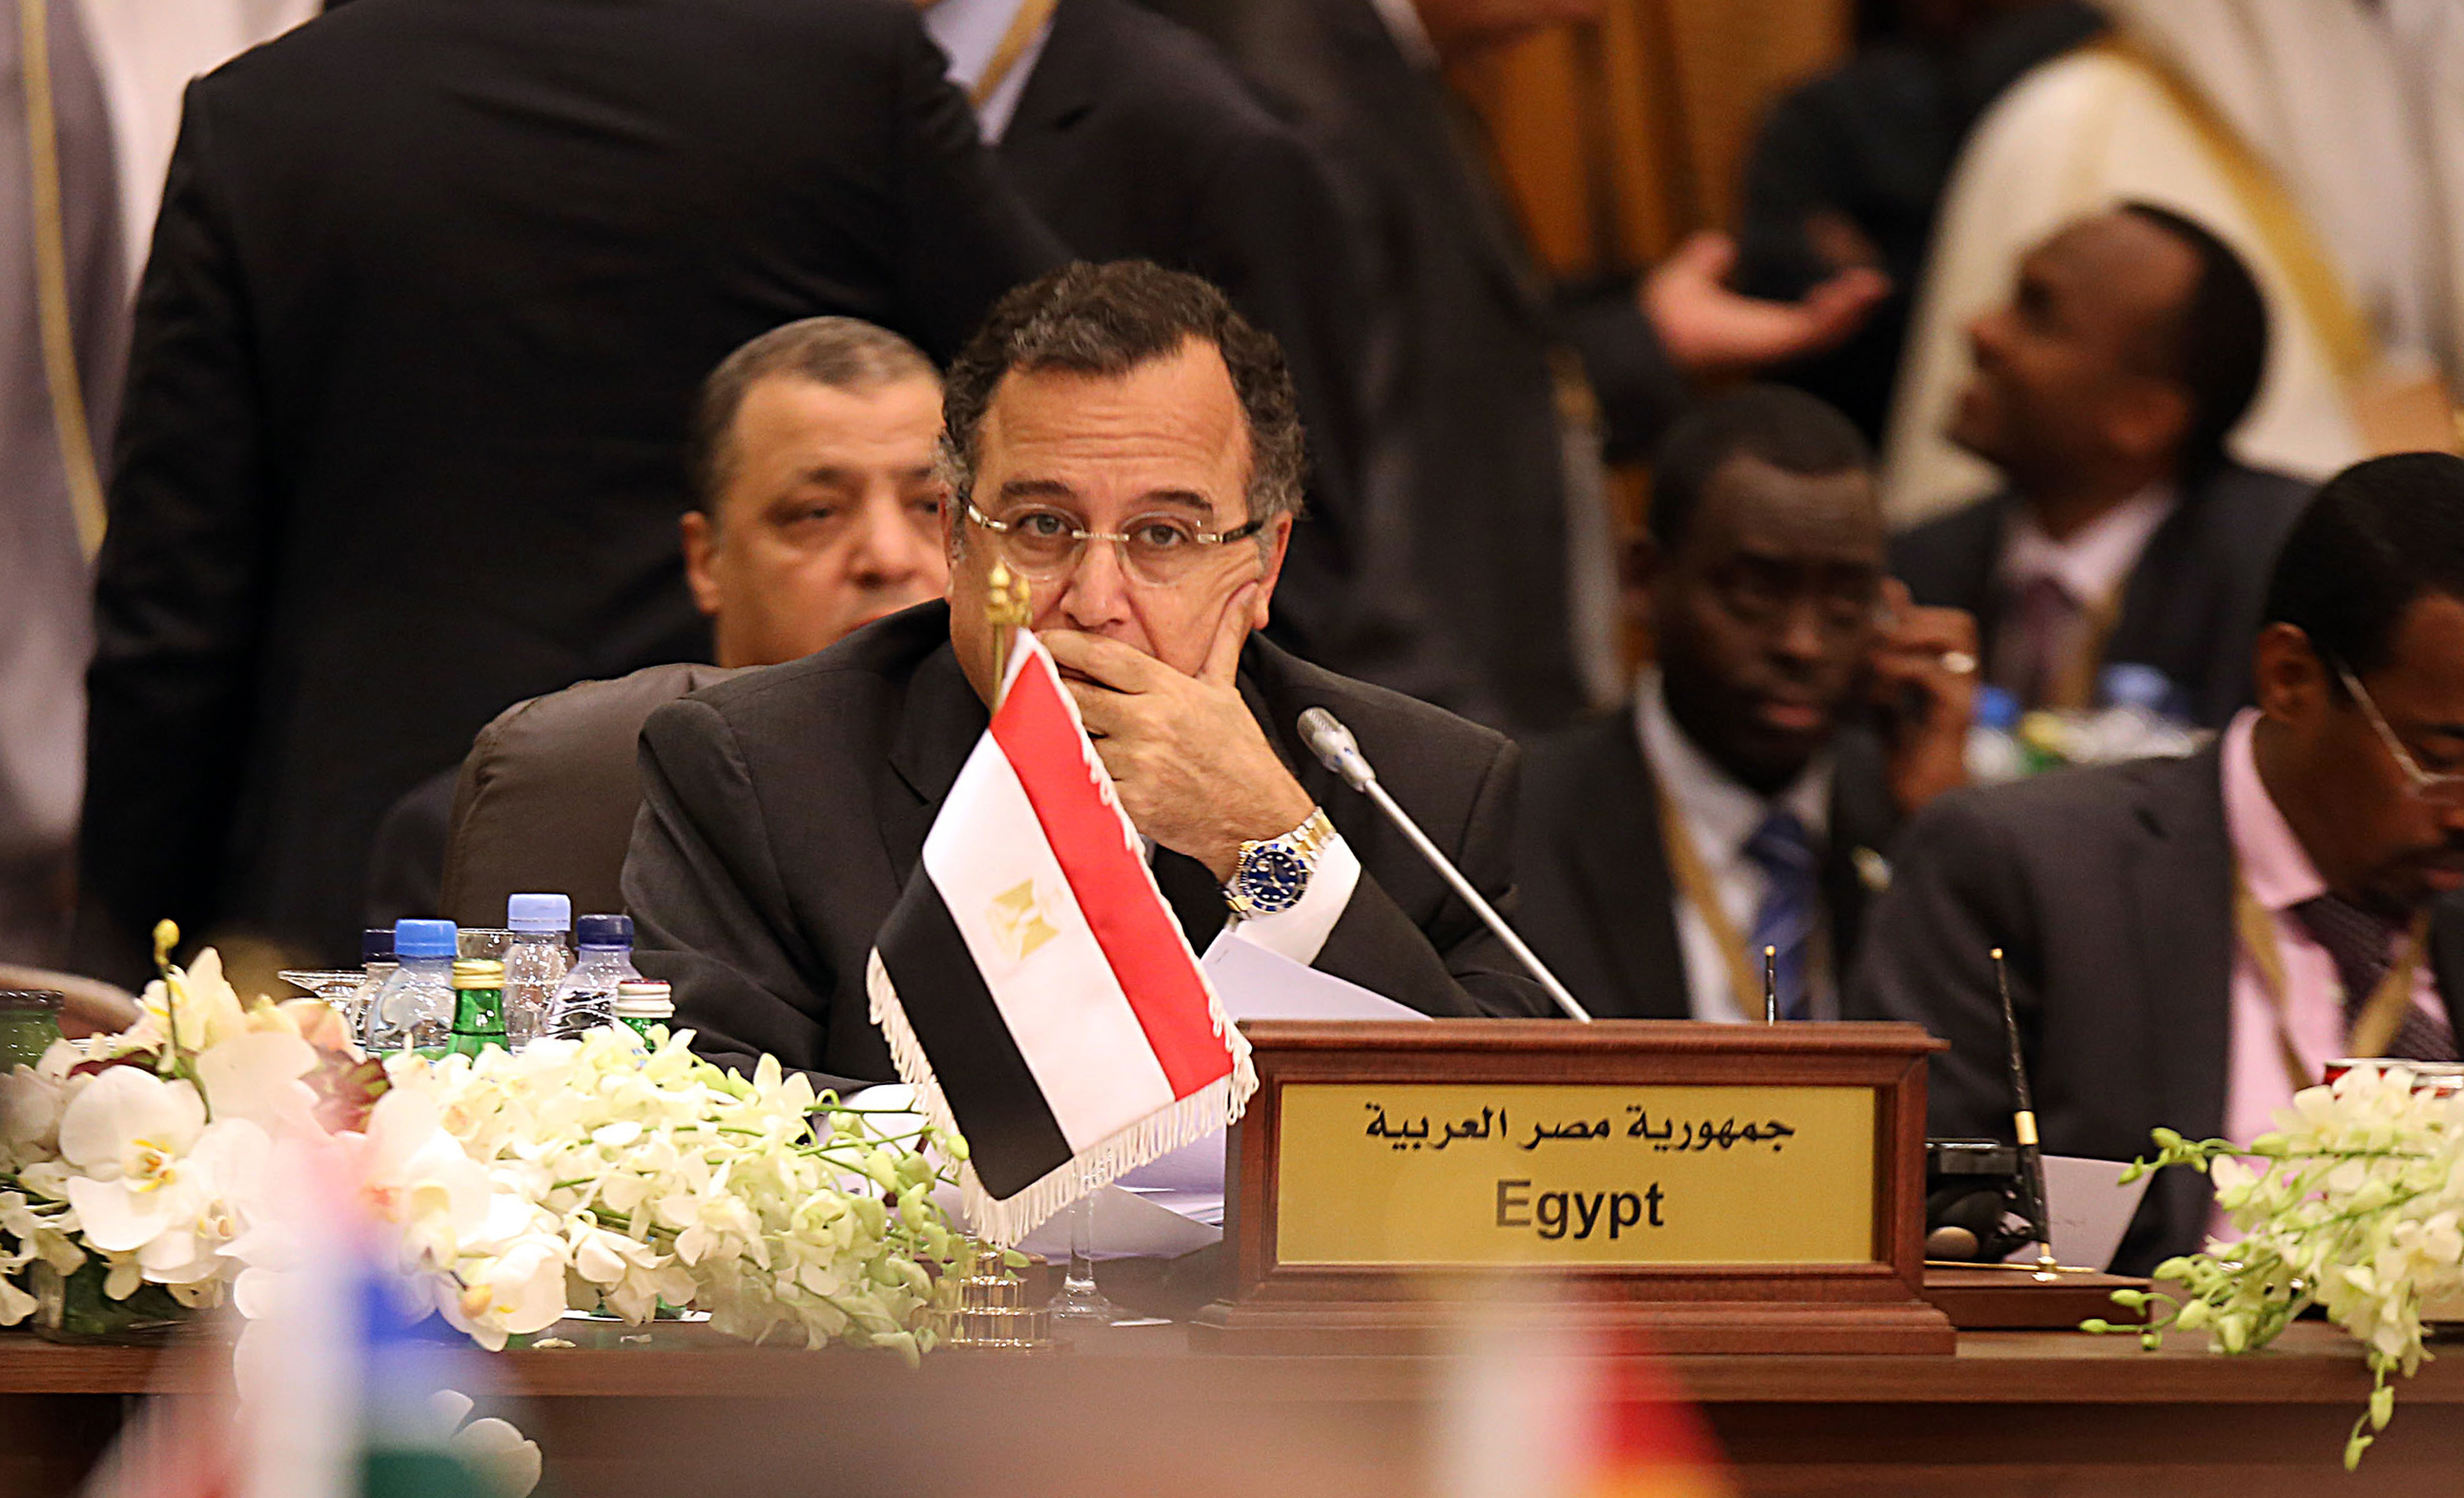 Egyptian Foreign Minister Nabil Fahmi attends the Arab-African Foreign Ministers meeting in Kuwait city on November 17, 2013. (AFP PHOTO/YASSER AL-ZAYYAT)